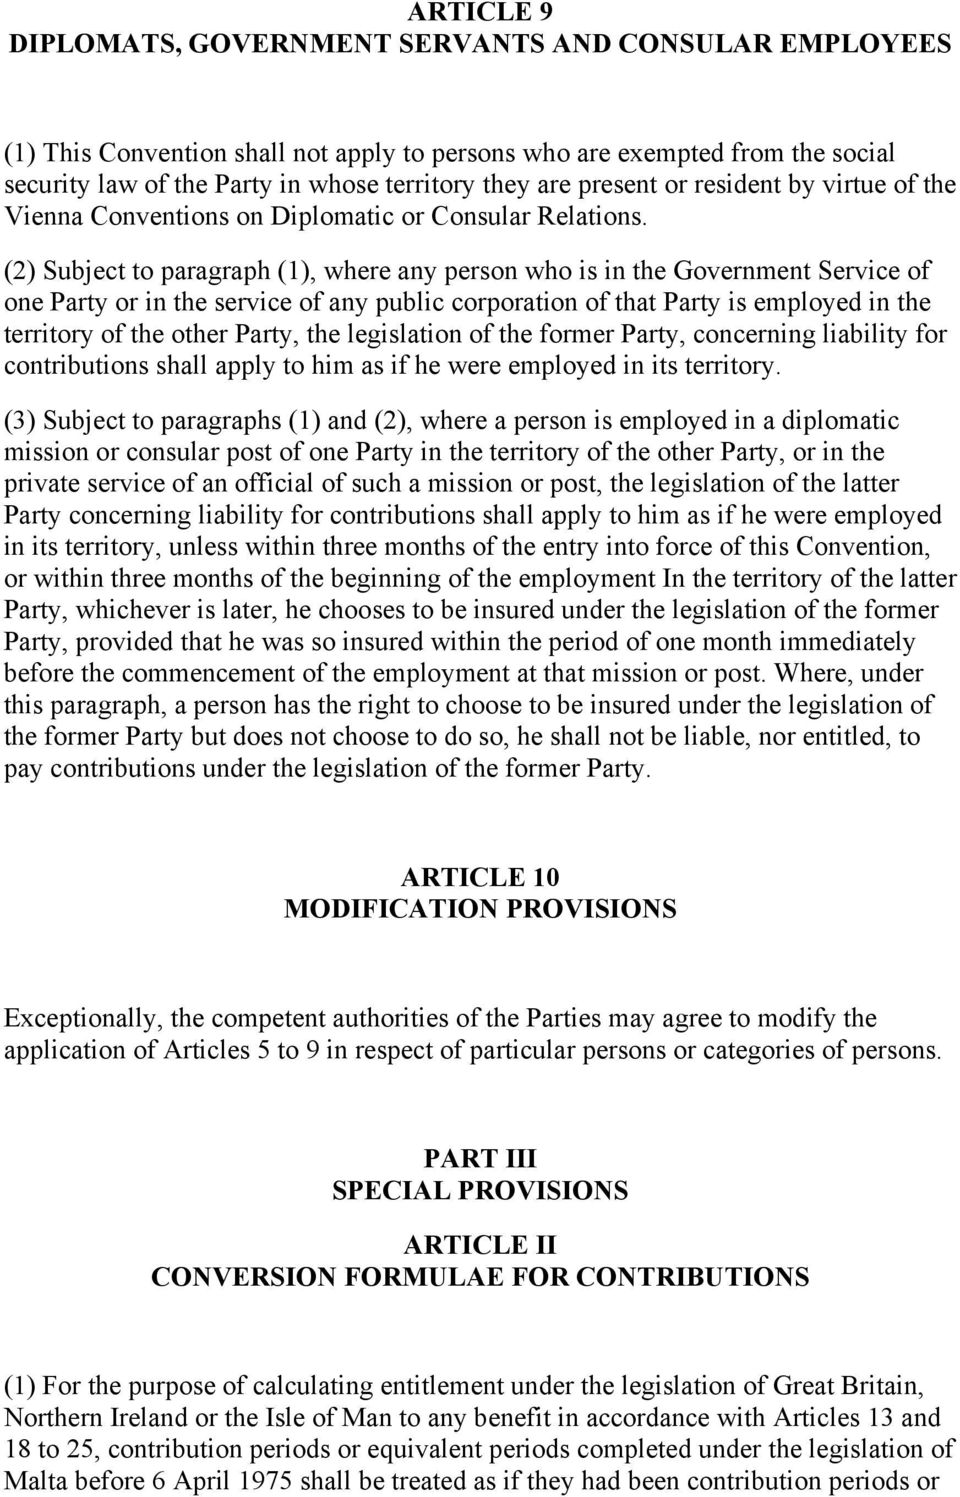 (2) Subject to paragraph (1), where any person who is in the Government Service of one Party or in the service of any public corporation of that Party is employed in the territory of the other Party,